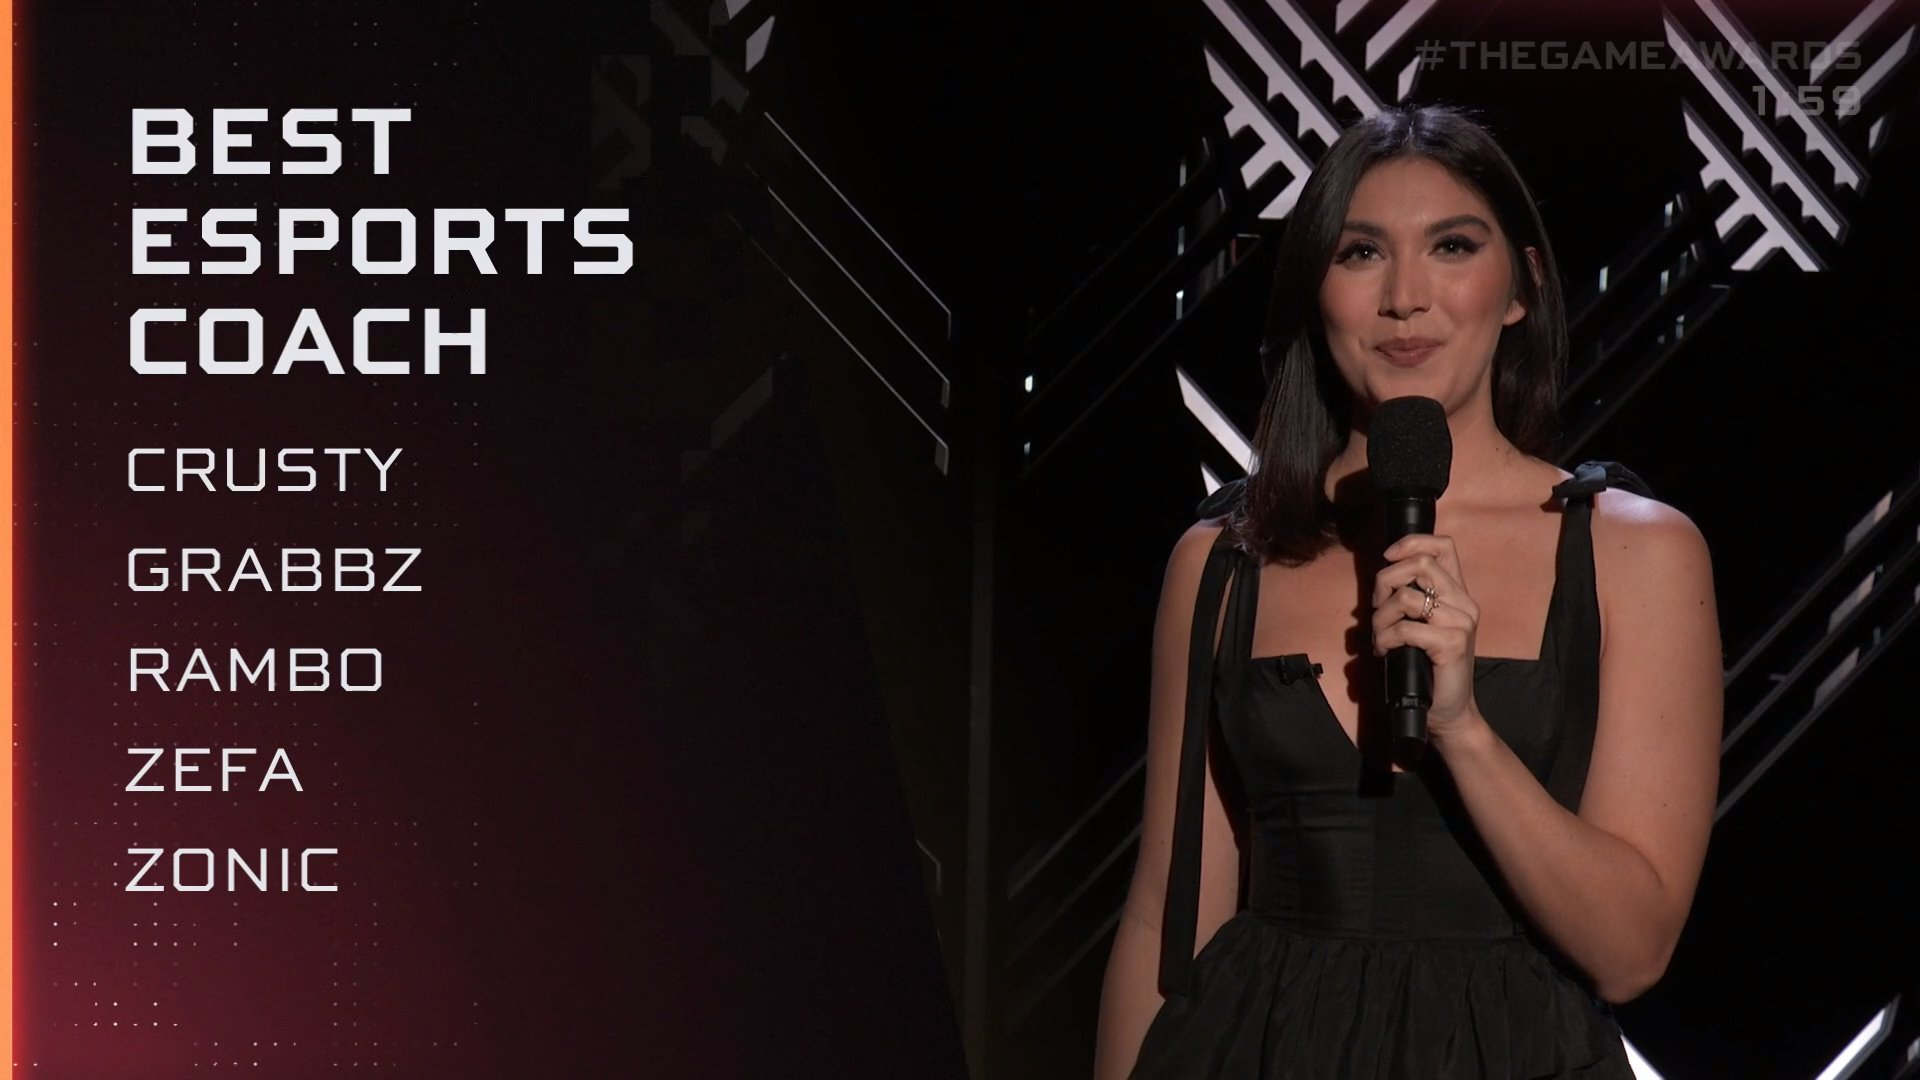 """Nibel on Twitter: """"Best eSports Game goes to LoL Best eSports Coach goes to Zonic Best eSports Event goes to LoL WC 2020 Best eSports Host goes to Sjokz Best eSports Team"""